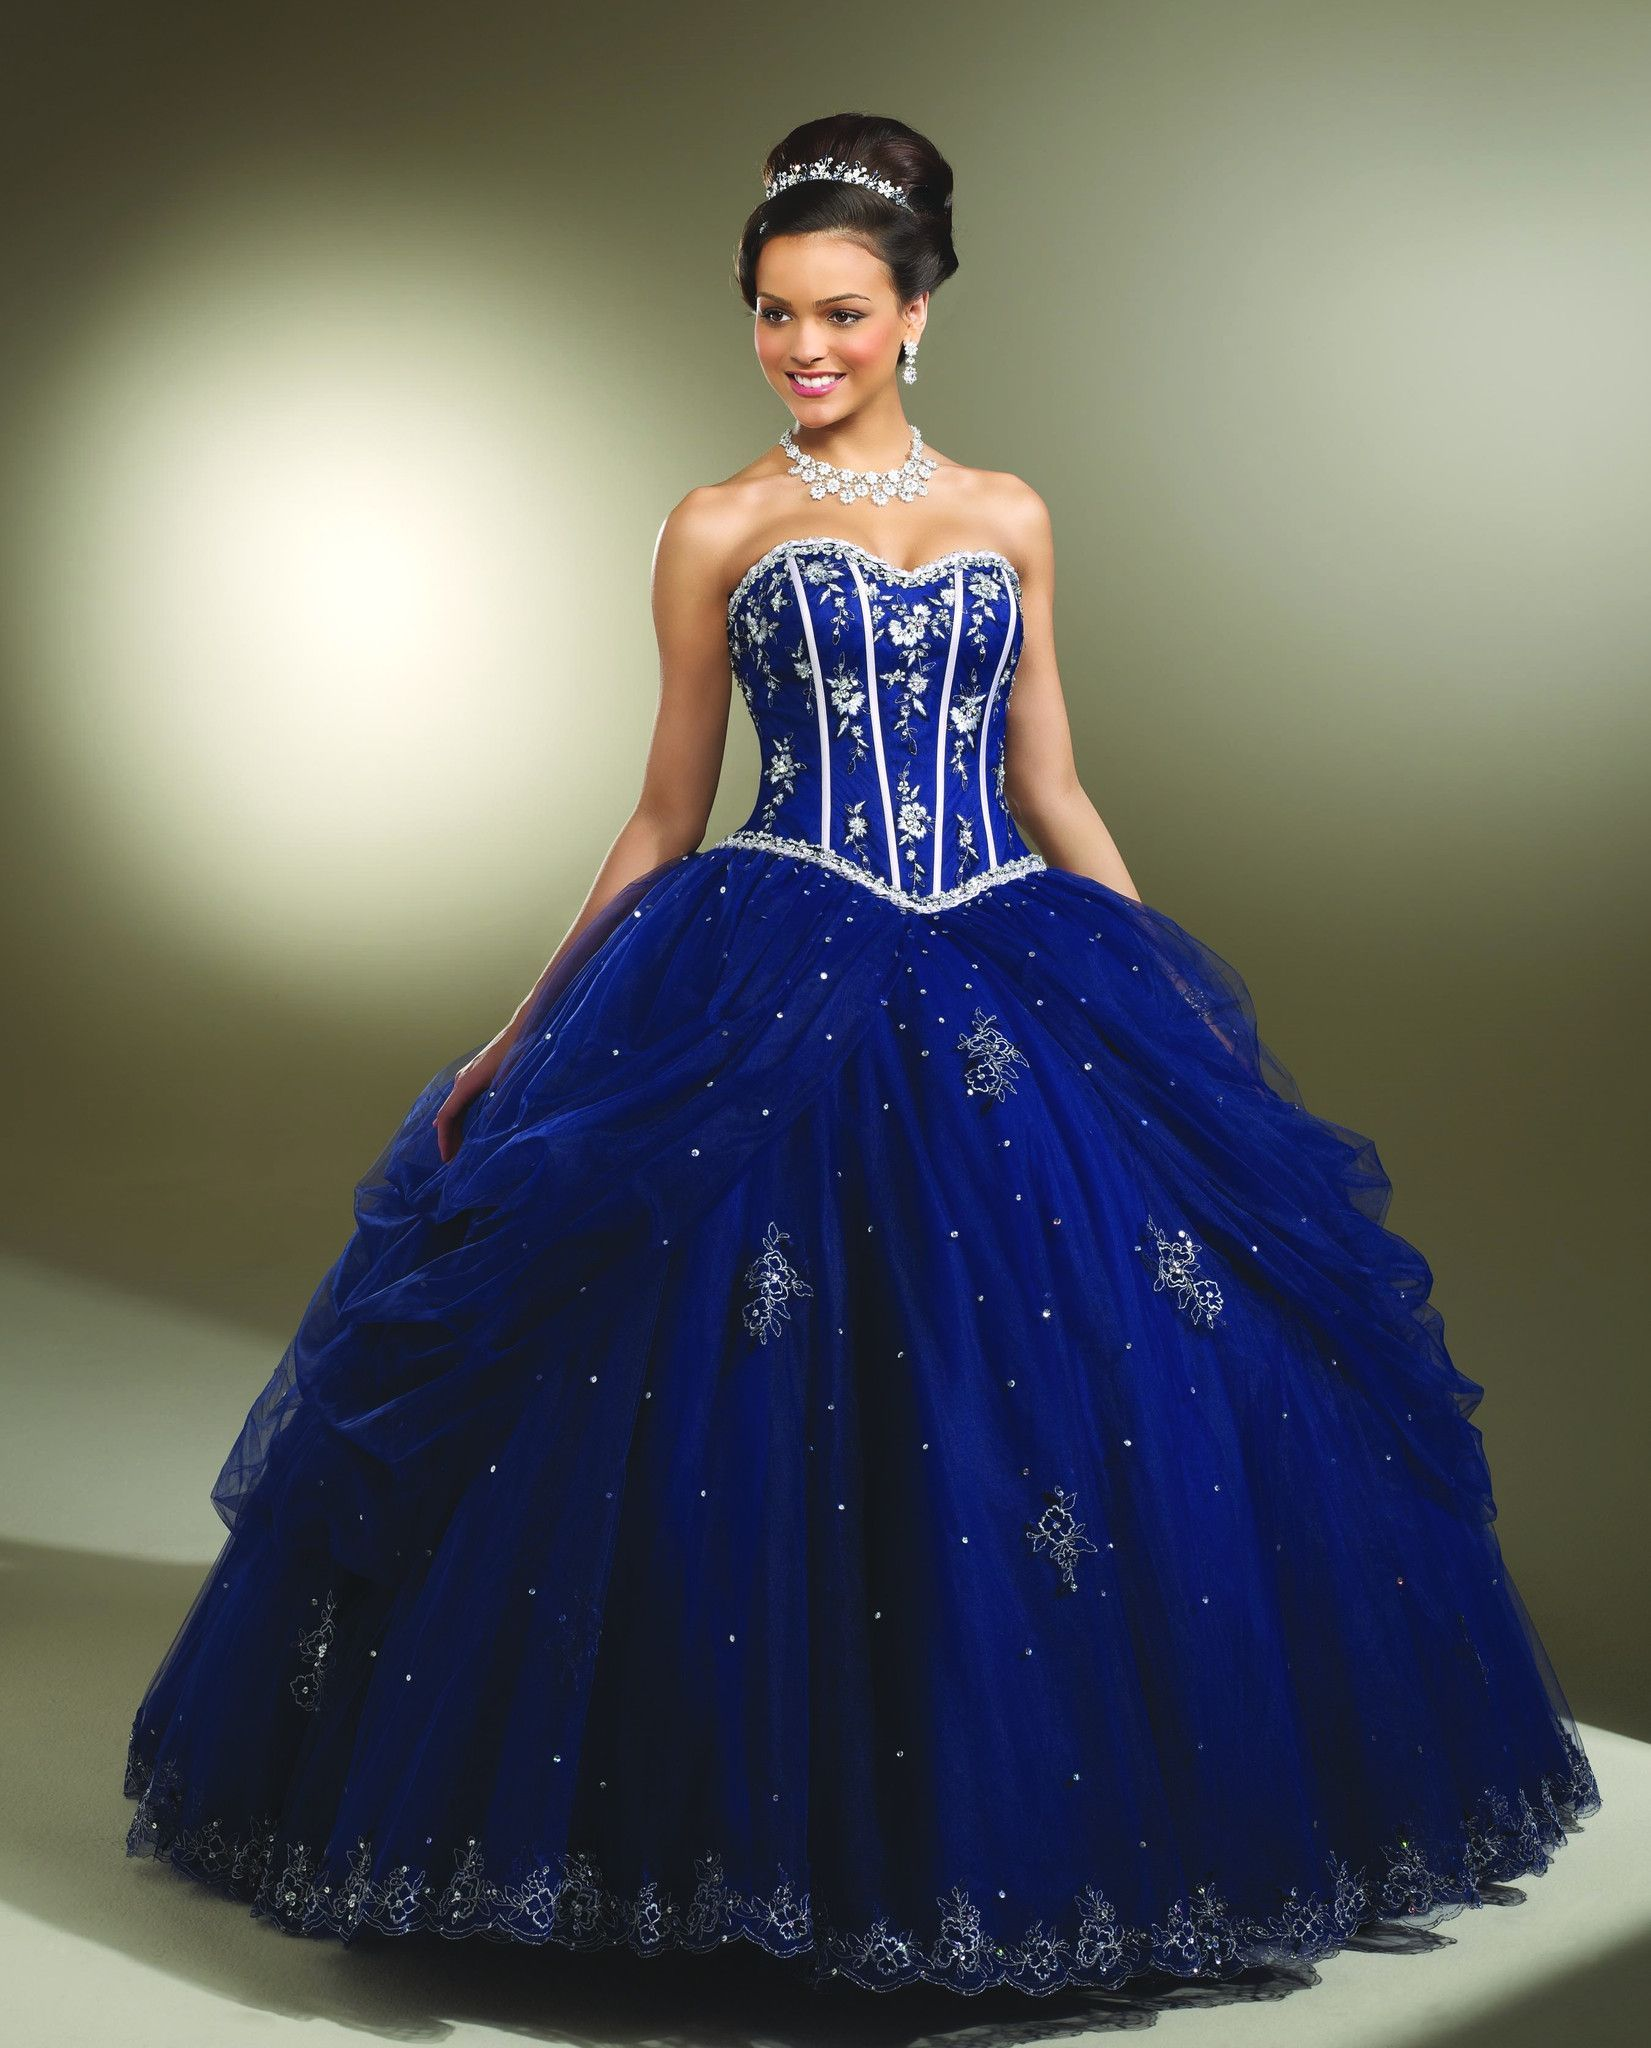 99848fb8f1c Mori Lee Vizcaya Quinceanera Dress Style 89101 is specially designed for  Sweet 15 girls who are looking for a timeless gown. Made out of satin and  tulle